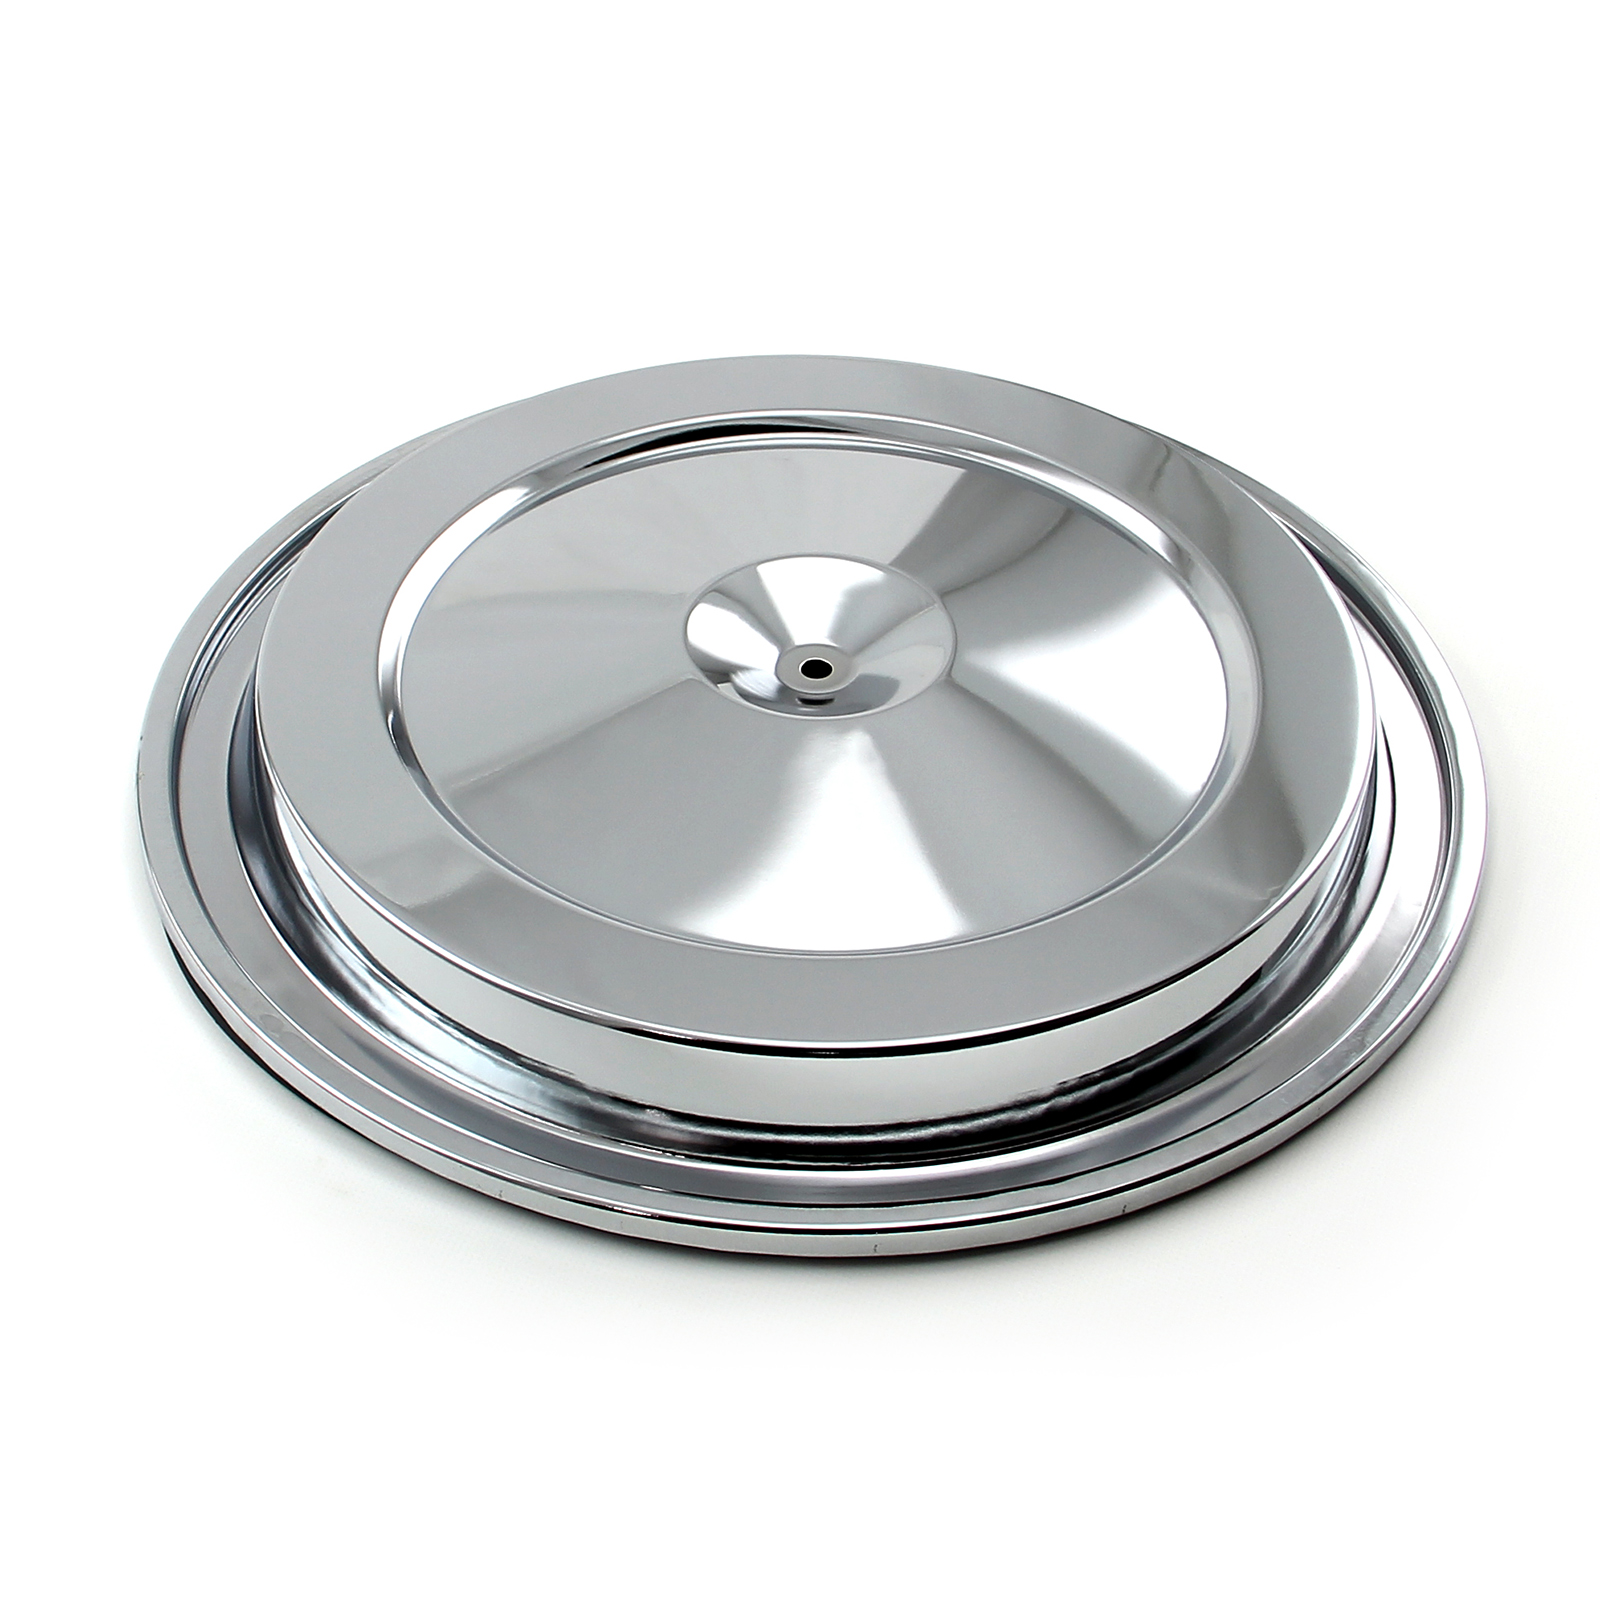 "15"" (15.375"") Round Air Cleaner Top - Chrome"